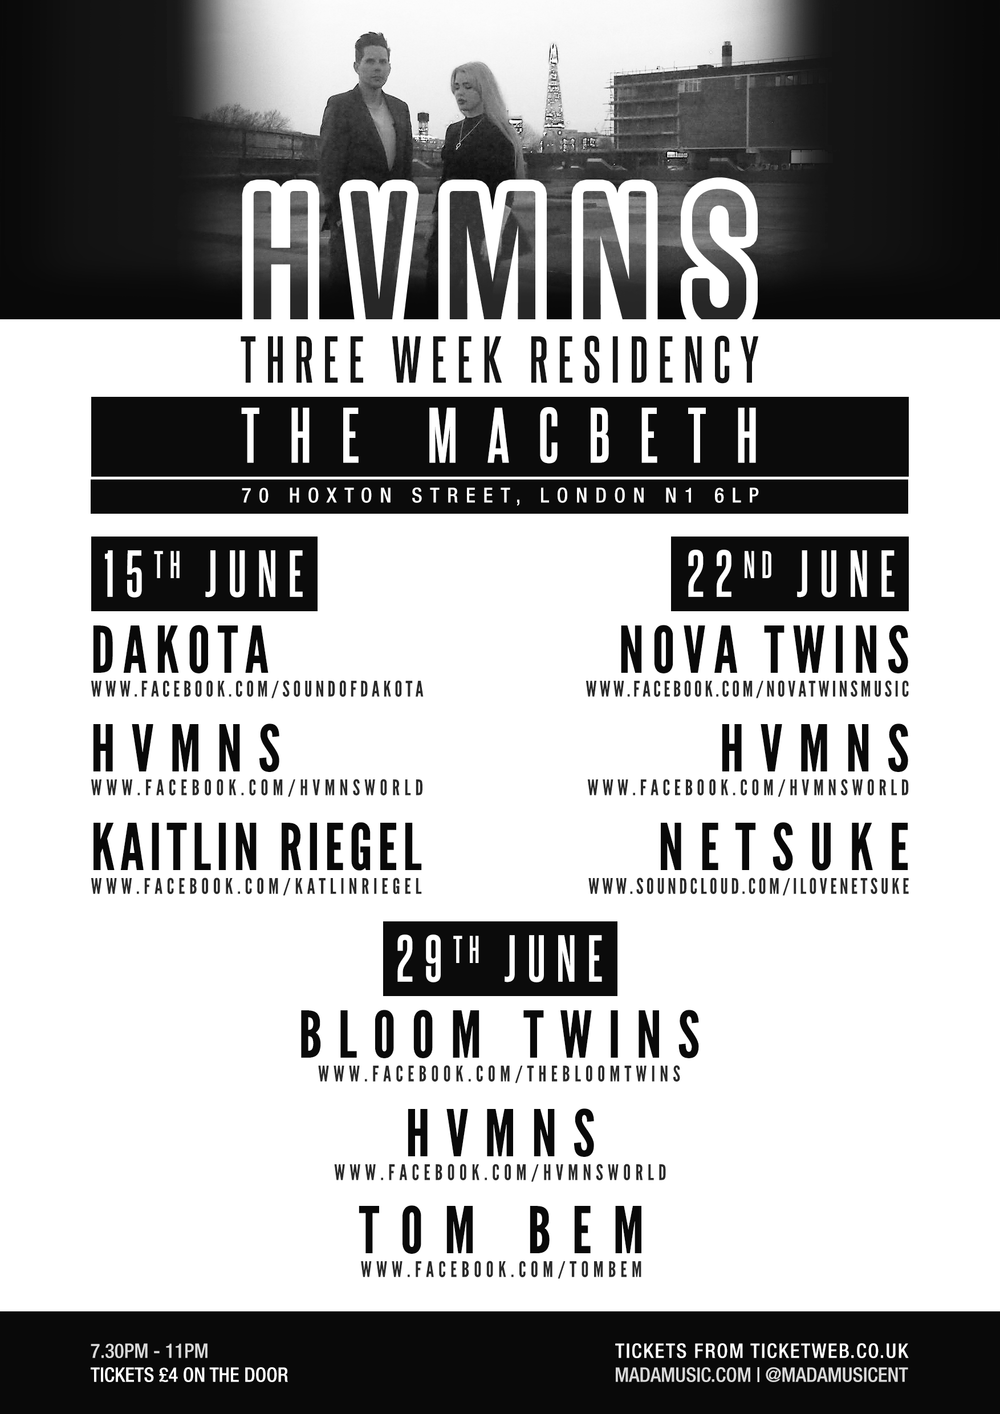 "MaDa Music Presents    HVMNS + Friends    Cancelled - Tuesday 9th   Monday 15th   Monday 22nd   Monday 29th     THE MACBETH     (CHANGED DATES/ VENUE DUE TO VENUE CLOSER)    Due to The Stillery closing down we have had to change dates and venues for this show.   We're delighted to announce the exciting new indie, electro pop duo, HVMNS will be playing a 3 week residency at The Macbeth. The nights will see 3-4 acts per week which will include 3 brilliant headliners.   Large drums/ sounds, drama and melancholy - A Church of Indie pop.   For fans of London Grammar | Florence and the machine | Bjork   TICKETS: £3 Adv | £4 otd ADDRESS: The Macbeth  Cancelled - Tuesday 9th Monday 15th - Dakota | Hvmns | Kaitlin Riegel Monday 22nd - Nova Twins | Hvmns | Netsuke Monday 29th - Bloom Twins | Hvmns | Tom Bem ------------------------------------------------------------------------------- ------------------------------------------------------------------------------- <<<<Monday 15th - Dakota | Hvmns | Kaitlin Riegel>>>> -------------------------------------------------------------------------------------------------------------------------------------------------------------- DAKOTA  https://www.facebook.com/soundofdakota   We welcome this brilliant electro pop artist to headline the 2nd show of the week, who has the melodies and beats to beat the best of them.   Dakota is the exciting indie / alternative / pop artist signed to the emerging independent London based label 70Hz Recordings. Dakota's first musical offering is her interpretation of Son House's rendition of the 1930's gospel blues call, 'John The Revelator'. Her fresh sound and distinctive vocal tone make her one emerging artist to keep an eye on in 2015.  John The Revelator video:  https://youtu.be/HuC7Y3Ct5a4  ------------------------------------------------------------------------------- >HVMNS  -------------------------------------------------------------------------------  Kaitlin Riegel   https://www.youtube.com/watch?v=ENb-x-nGbqg   https://soundcloud.com/kaitlinriegel/sets/mastered-ep3/s-P9oAs   Portland, OR-born Kaitlin Riegel first discovered her talents for singing and songwriting, described by The 405 as ""her powerful voice and emotional lyrics that hit like a one-two punch"". She recorded her first EP in Berlin, with Australian producer Simon Berkelman (Art vs science, Wolfmother, Temper Trap, etc).  After performing at the 2014 MUSEXPO in Los Angeles, Kaitlin began working on her new material and enlisted the help of Moshi Moshi Record's (known for Hot Chip, Bloc Party, Florence + The Machine, Kate Nash, etc.), folktronica artist and producer, James Yuill.  Clash Music as ""a huge step forward, with Kaitlin really seeming to find her voice""  Wonderland Magazine proclaimed was a ""melancholic ballad, with the chords, melody and percussion simply serving as a frame for Kaitlin's haunting harmonies, like a choral choir, they echo and the unusual but likeable tone of her voices shines through.""  Kaitlin is now ready to unveil the first taste from her third EP, '41.9', in the form of her new single'Fluorescent Lighting'. ------------------------------------------------------------------------------ ------------------------------------------------------------------------------ <<<<Monday 22nd - Nova Twins 